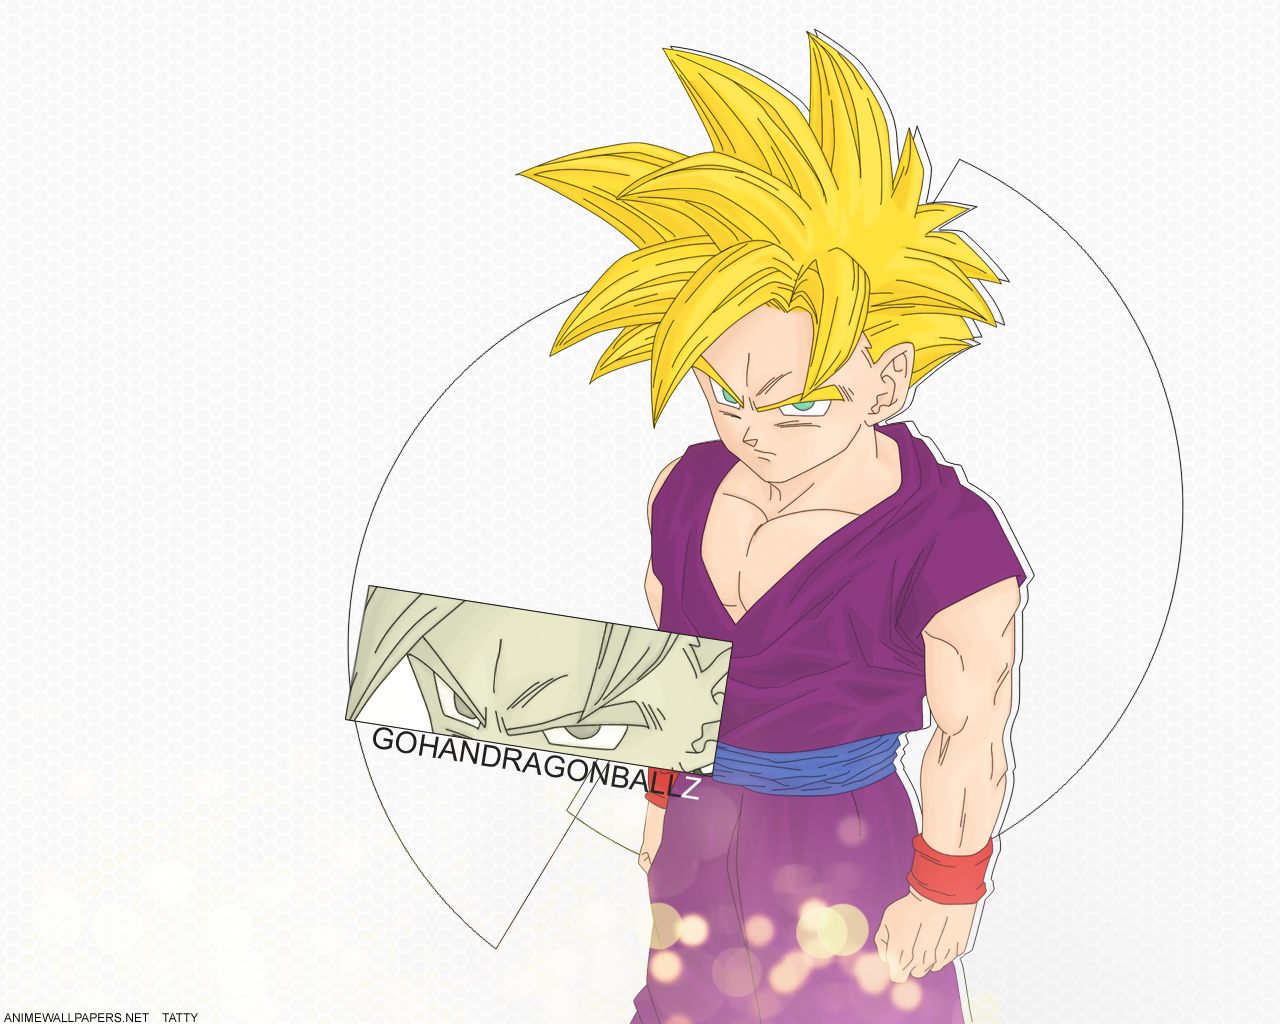 Teen gohan wallpaper by tattydesigns on deviantart - Teen gohan wallpaper ...